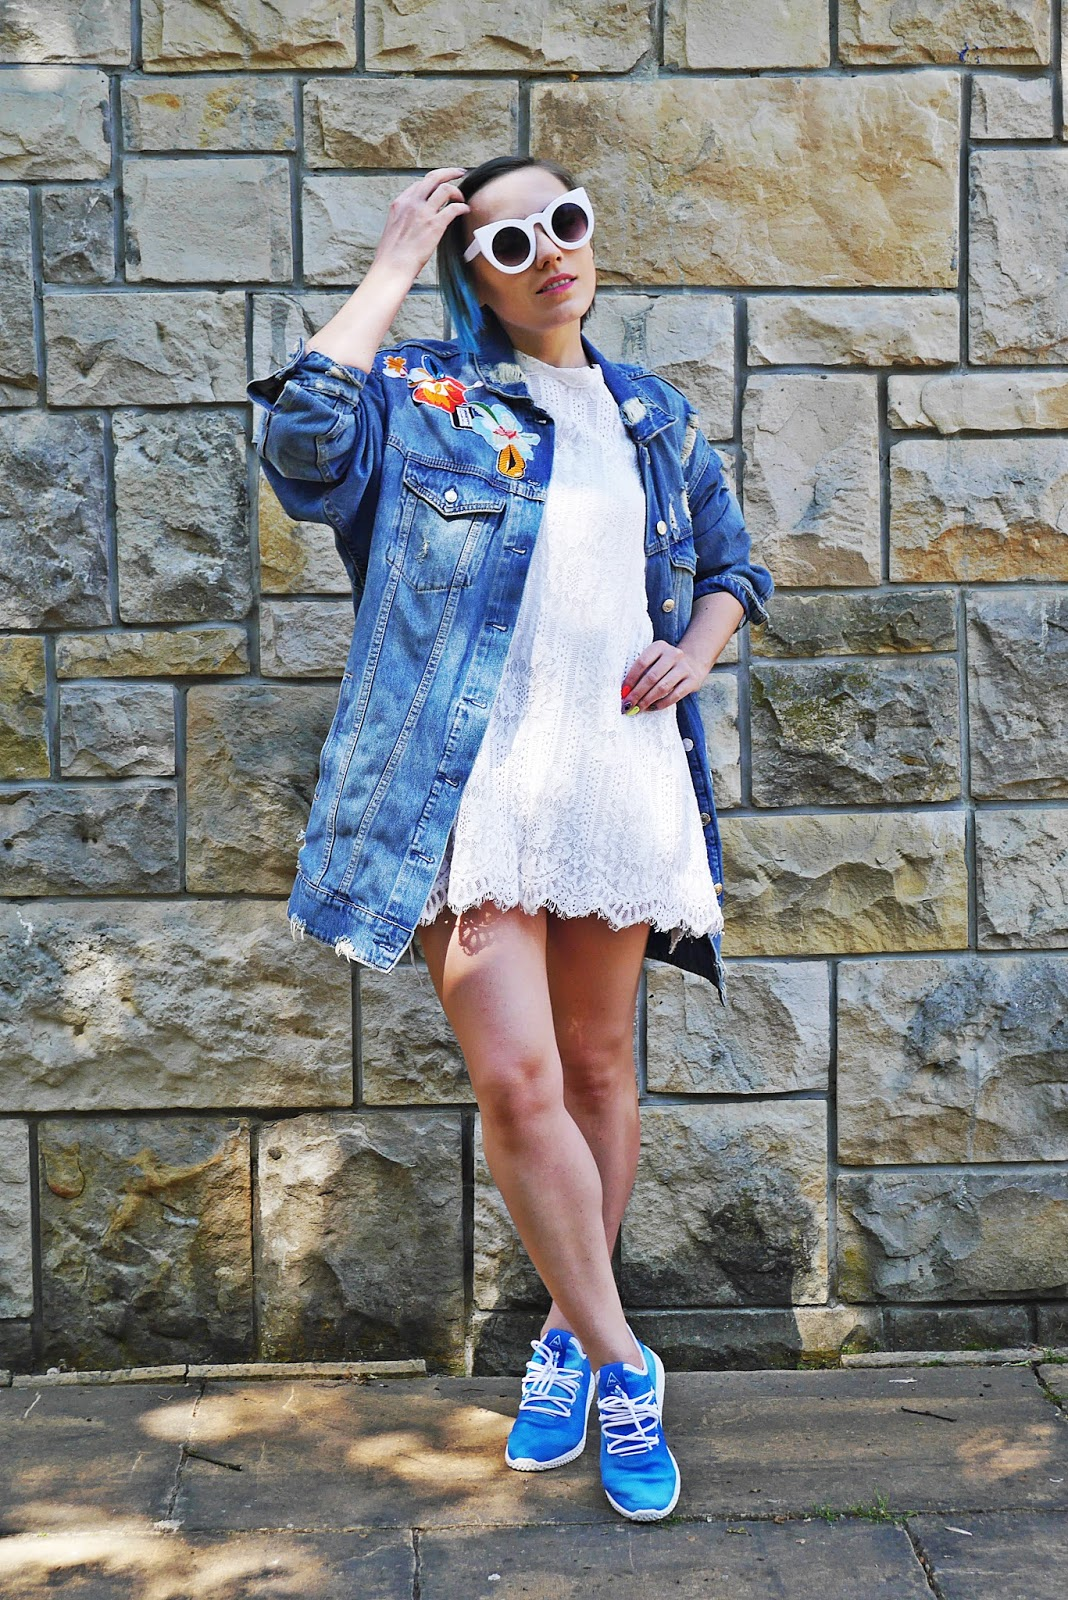 7_adidas_tennis_holi_hu_blue_lace_dress_denim_jacket_karyn_blog_modowy_140518